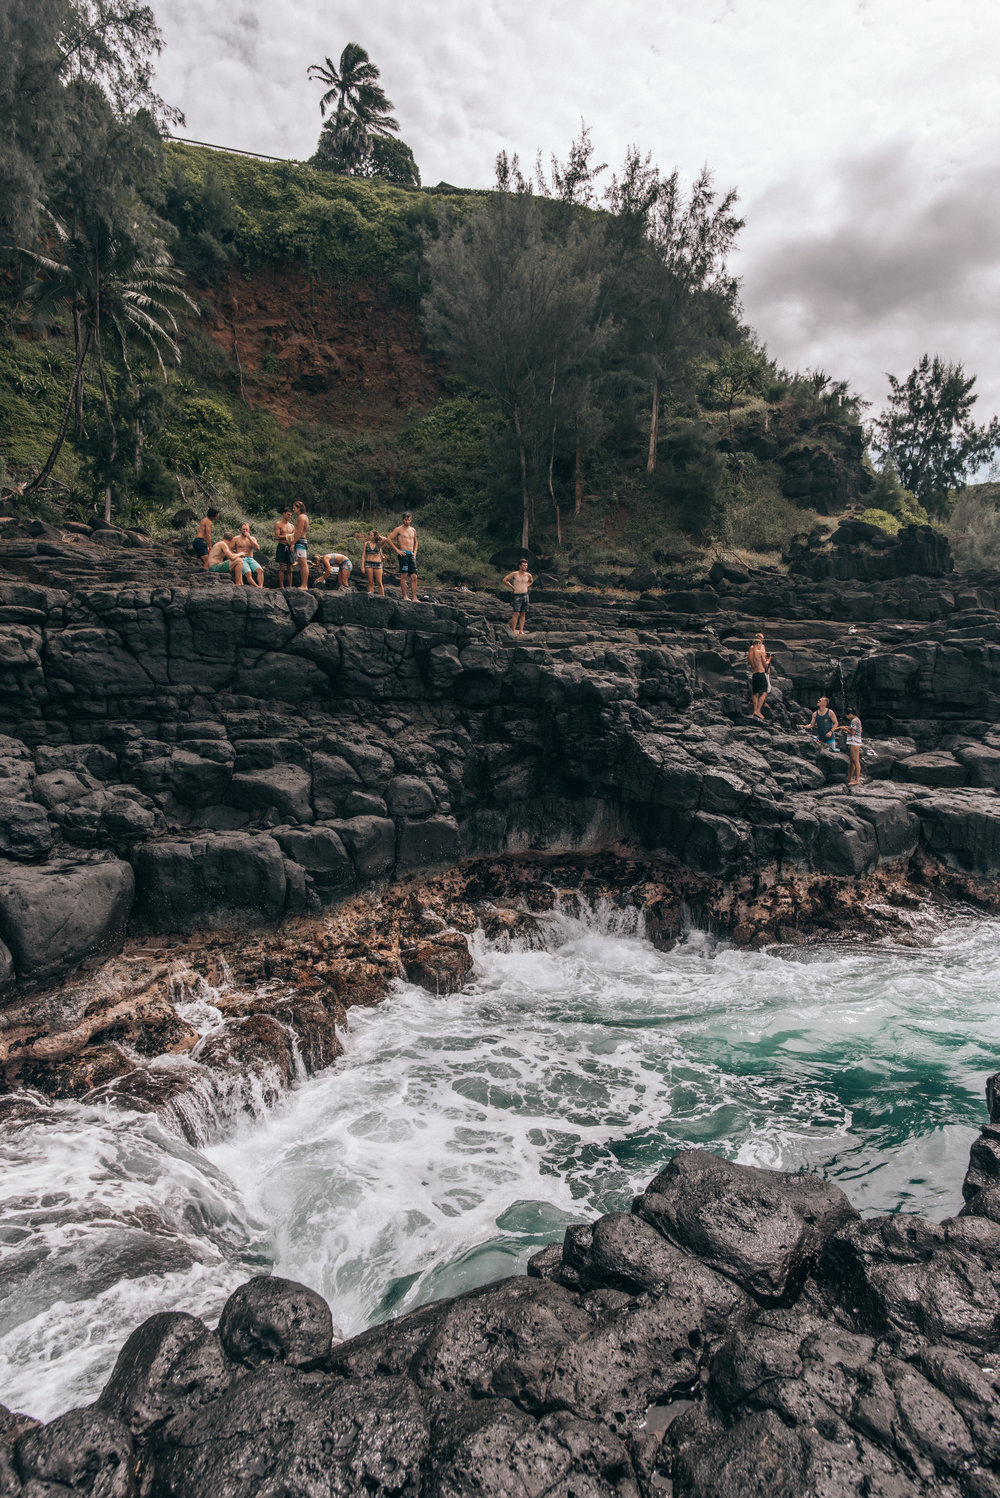 kauai-travel-guide-by-lisa-linh